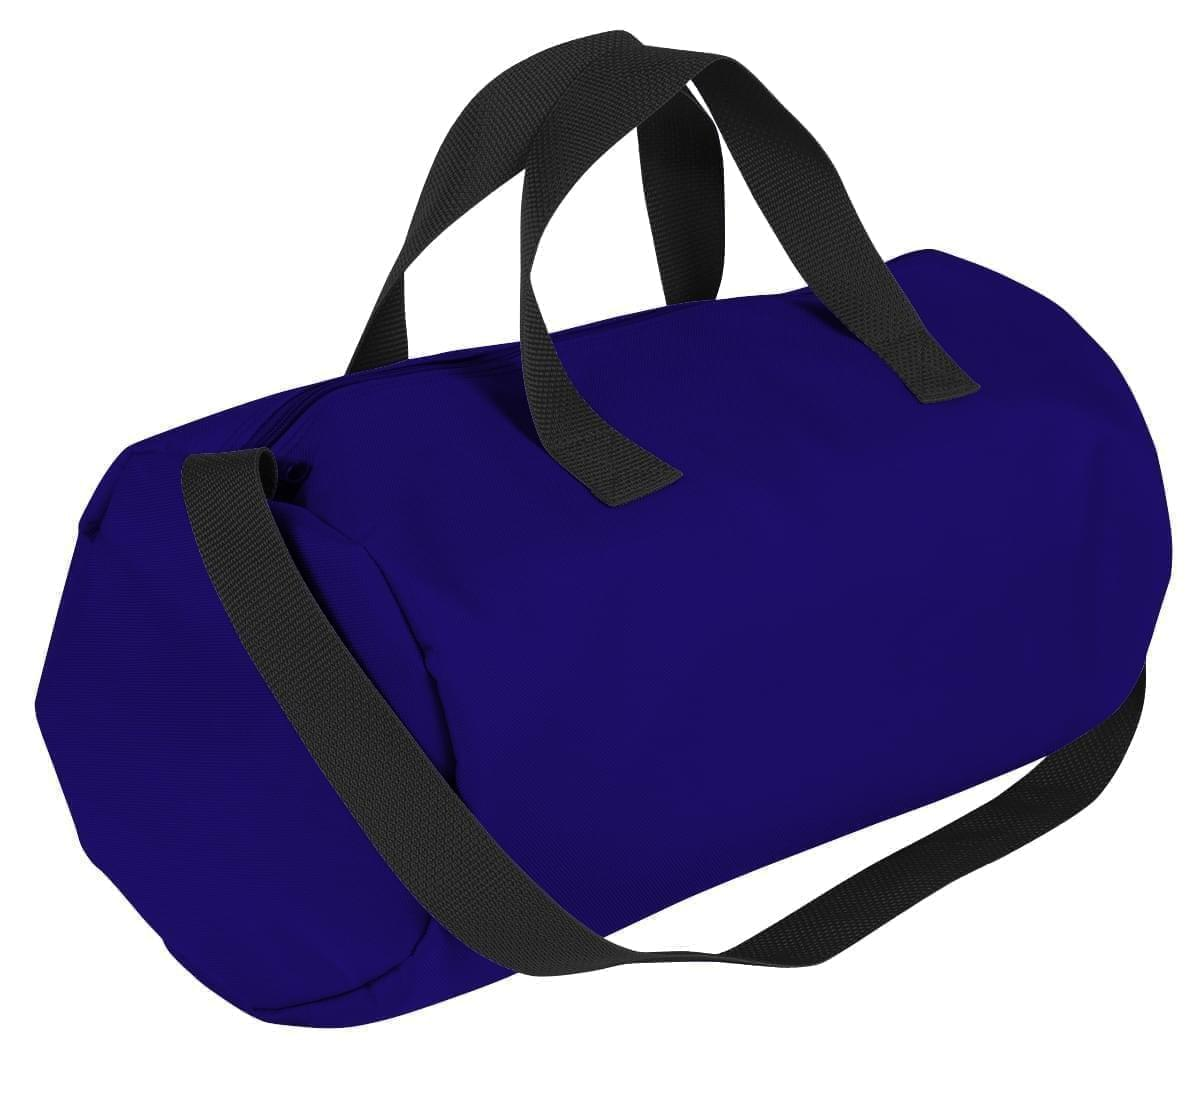 USA Made Nylon Poly Gym Roll Bags, Purple-Black, ROCX31AAYR